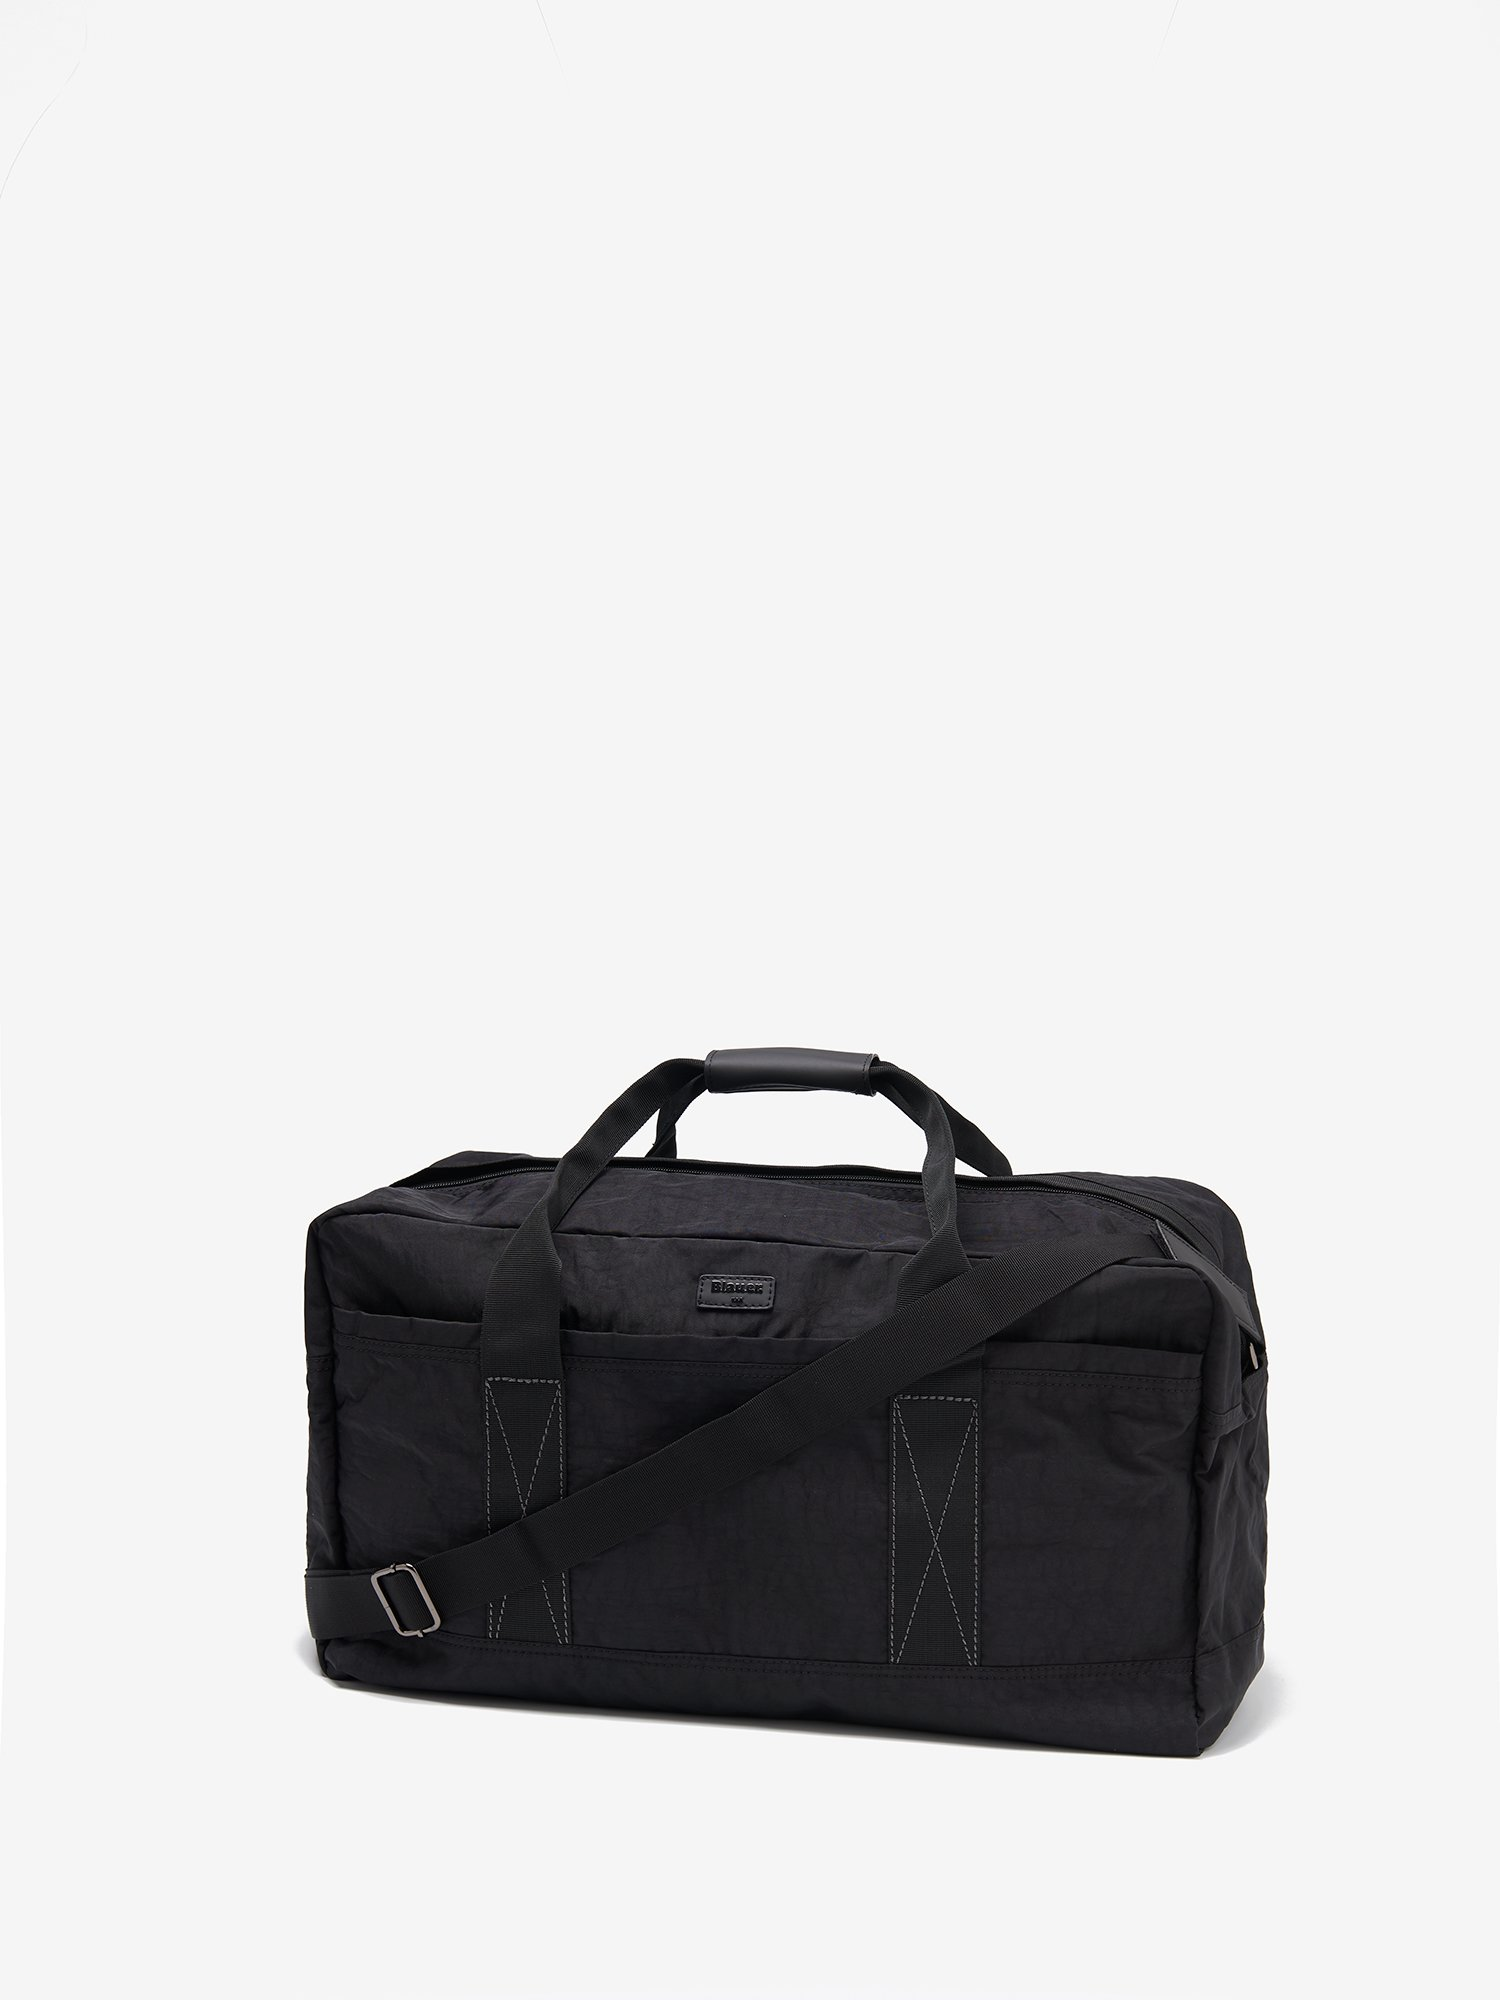 DUFFEL BAG WITH DETACHABLE SHOULDER STRAP - Blauer